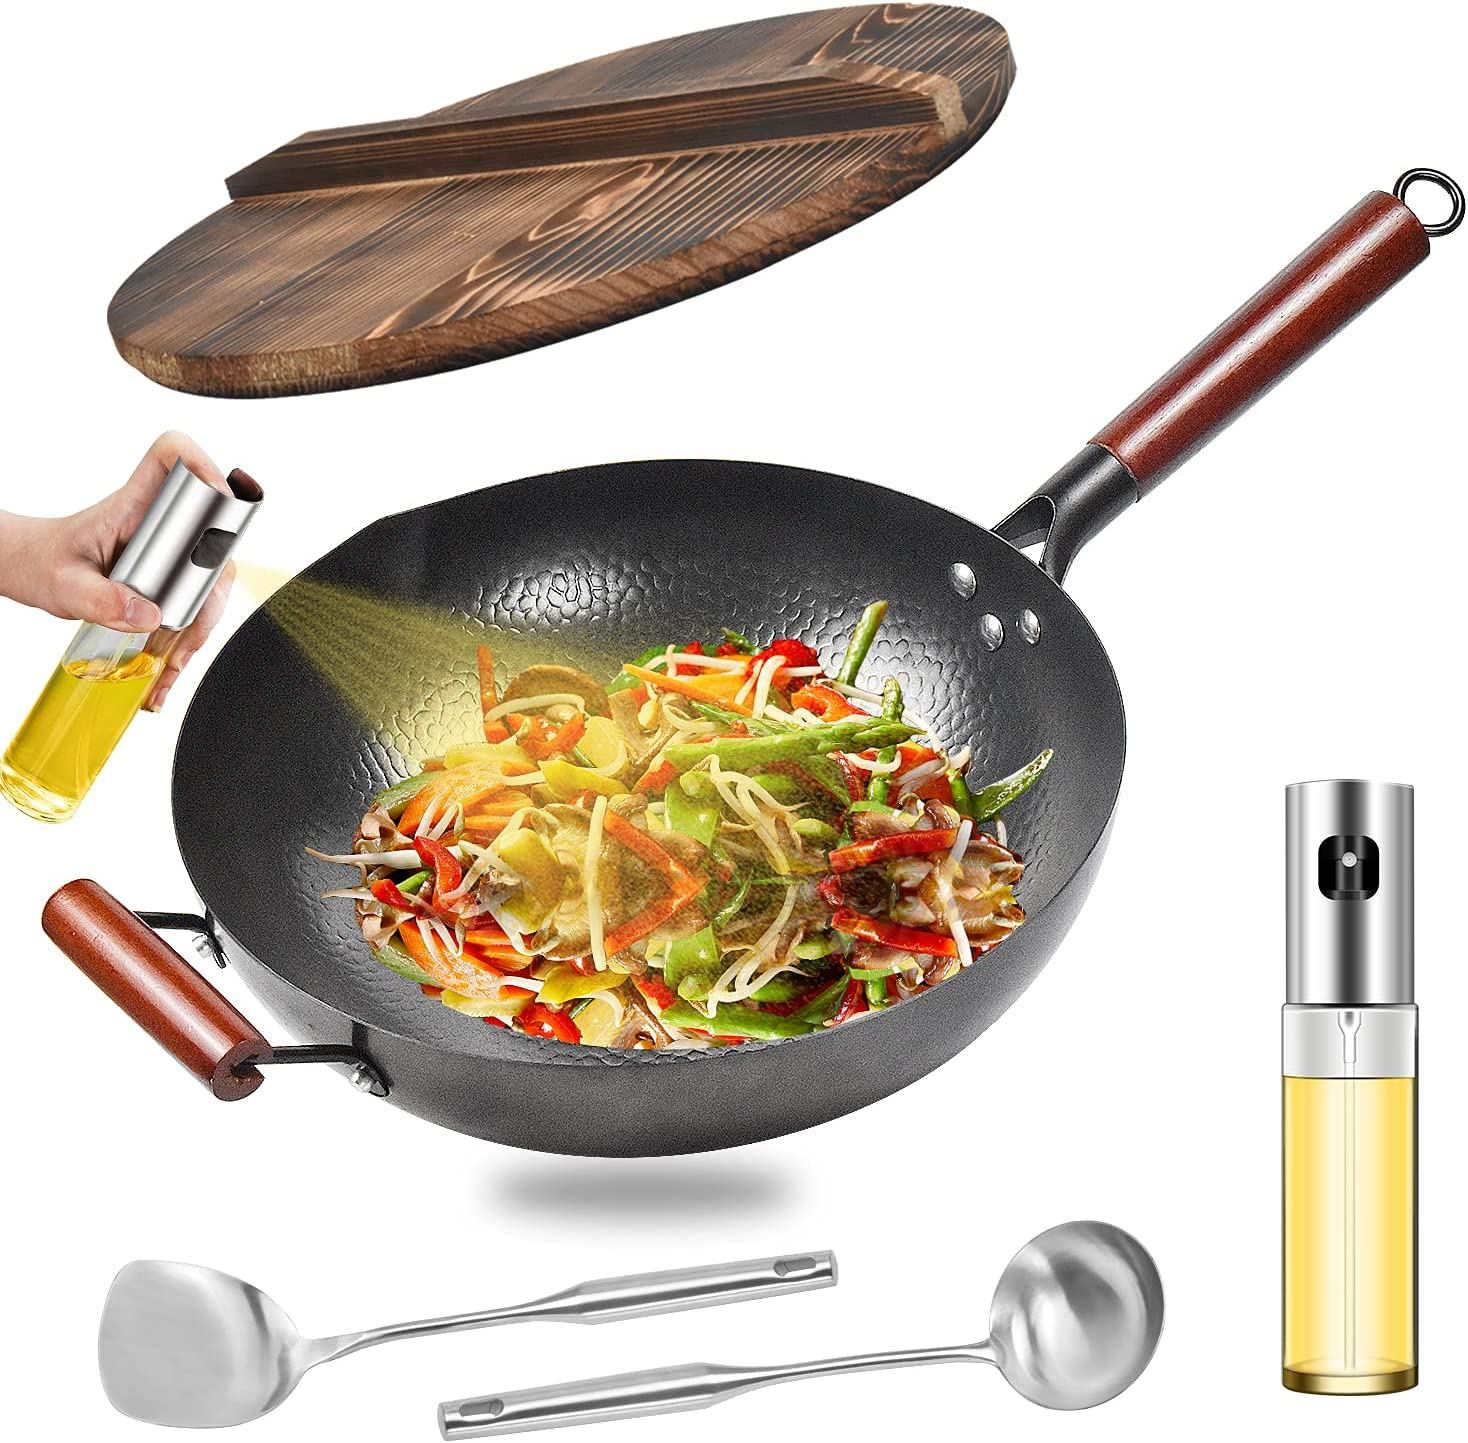 Carbon Steel Wok Pan, Chemical-free Woks and Stir Fry Pans with Lid & Oil Sprayer, Chinese Iron Pot with Wooden Handle, 12.6